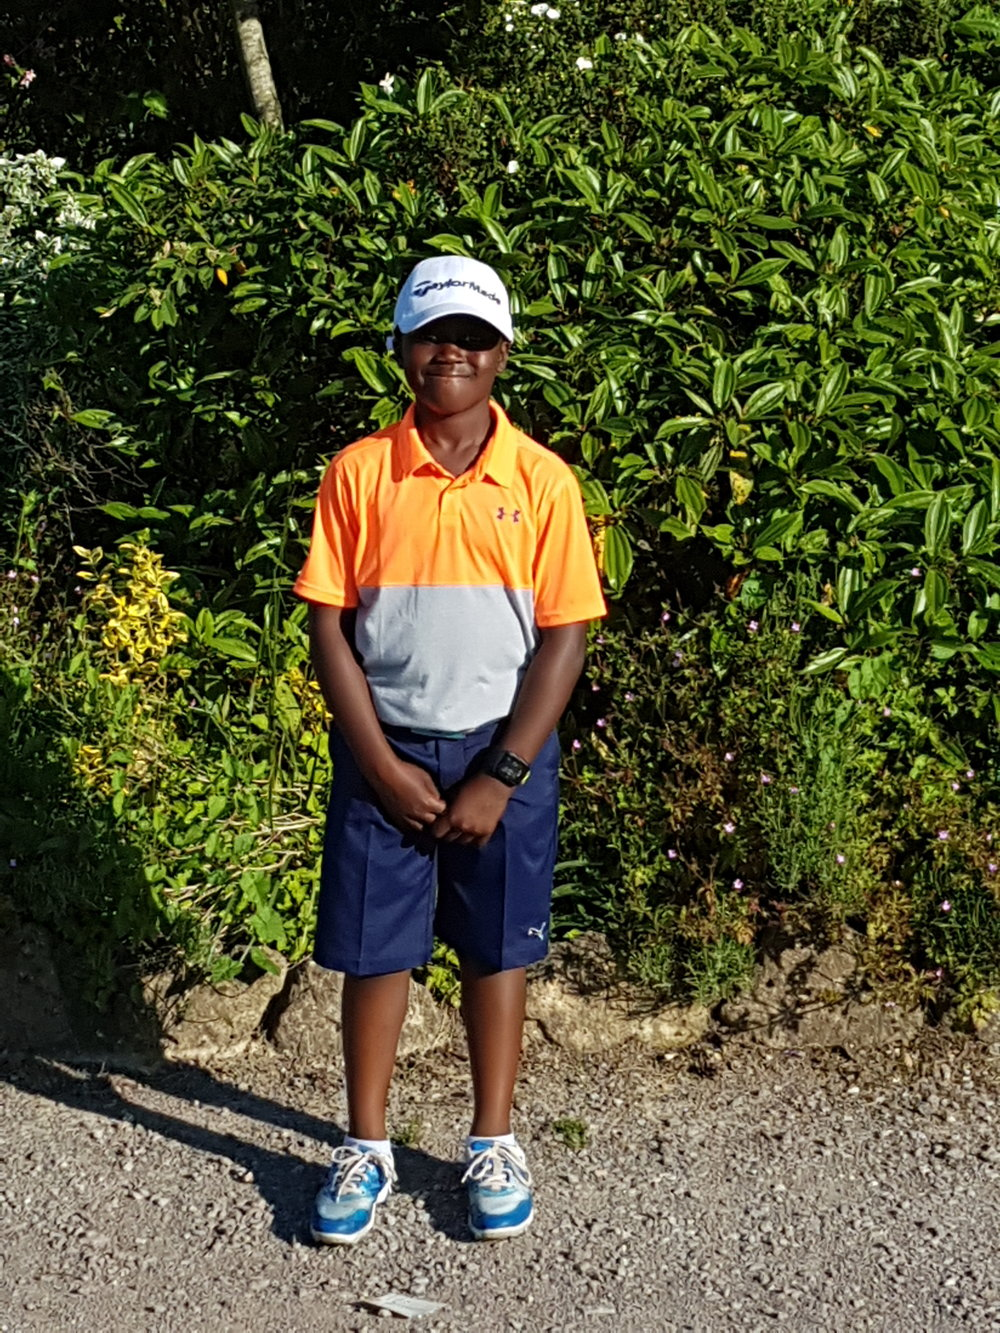 Copy of 2018 Regional Finalist Wee Wonders Cumberwell Park GC